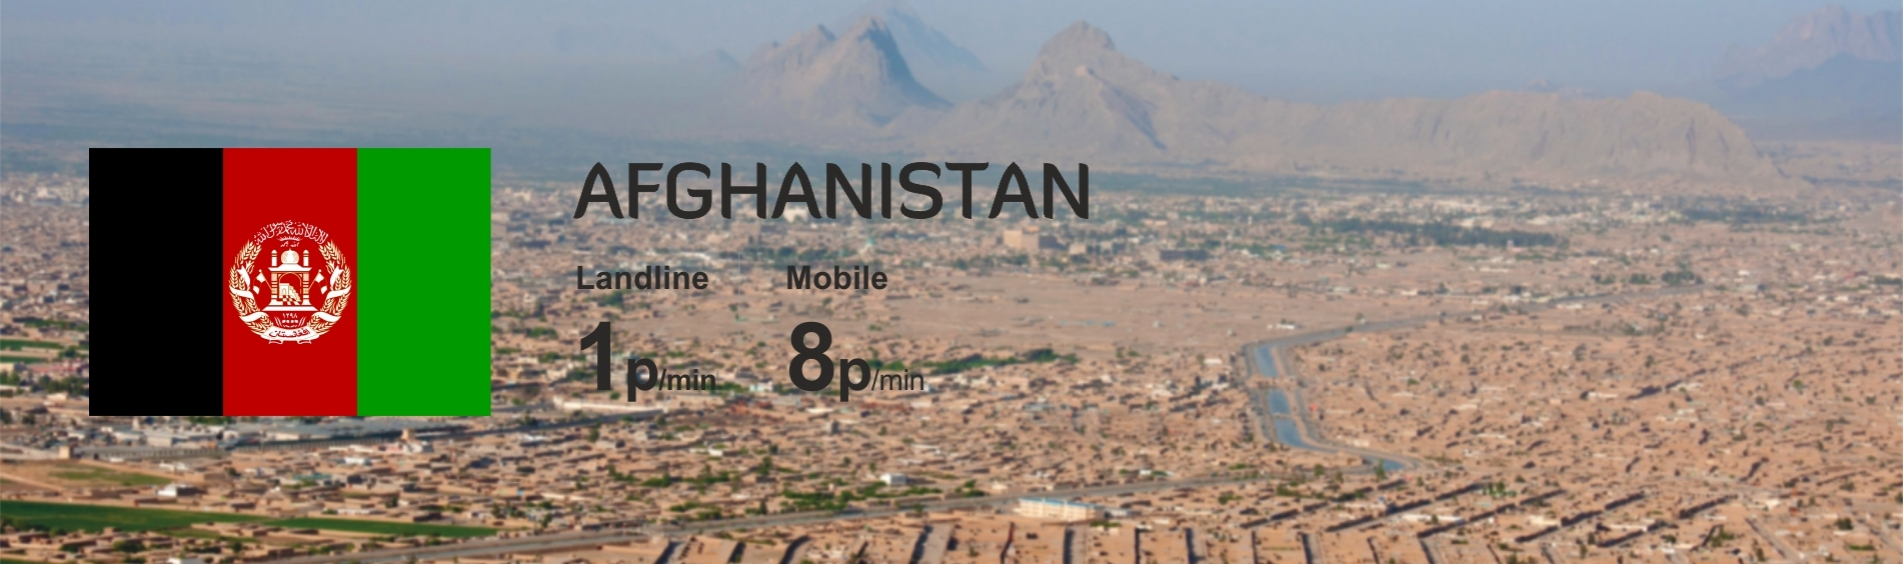 Best Calling Rates for Afghanistan